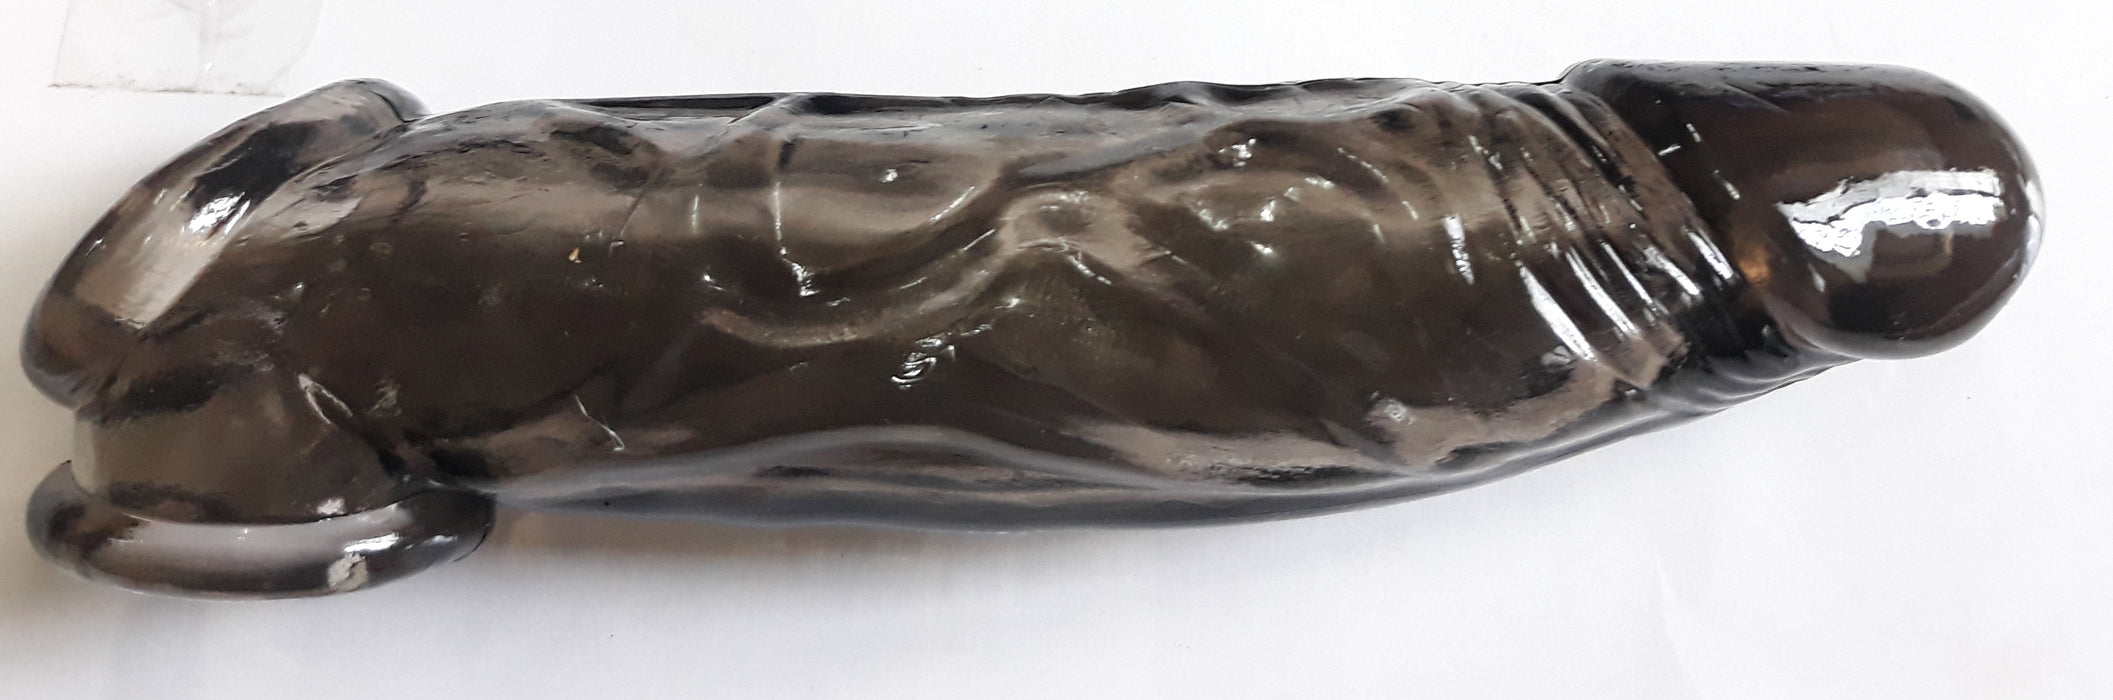 Black Mamba REALISTIC PENIS EXTENSION 7'' FLESH COCK SHEATH & BALL STRETCHER, www.masalatoys.com